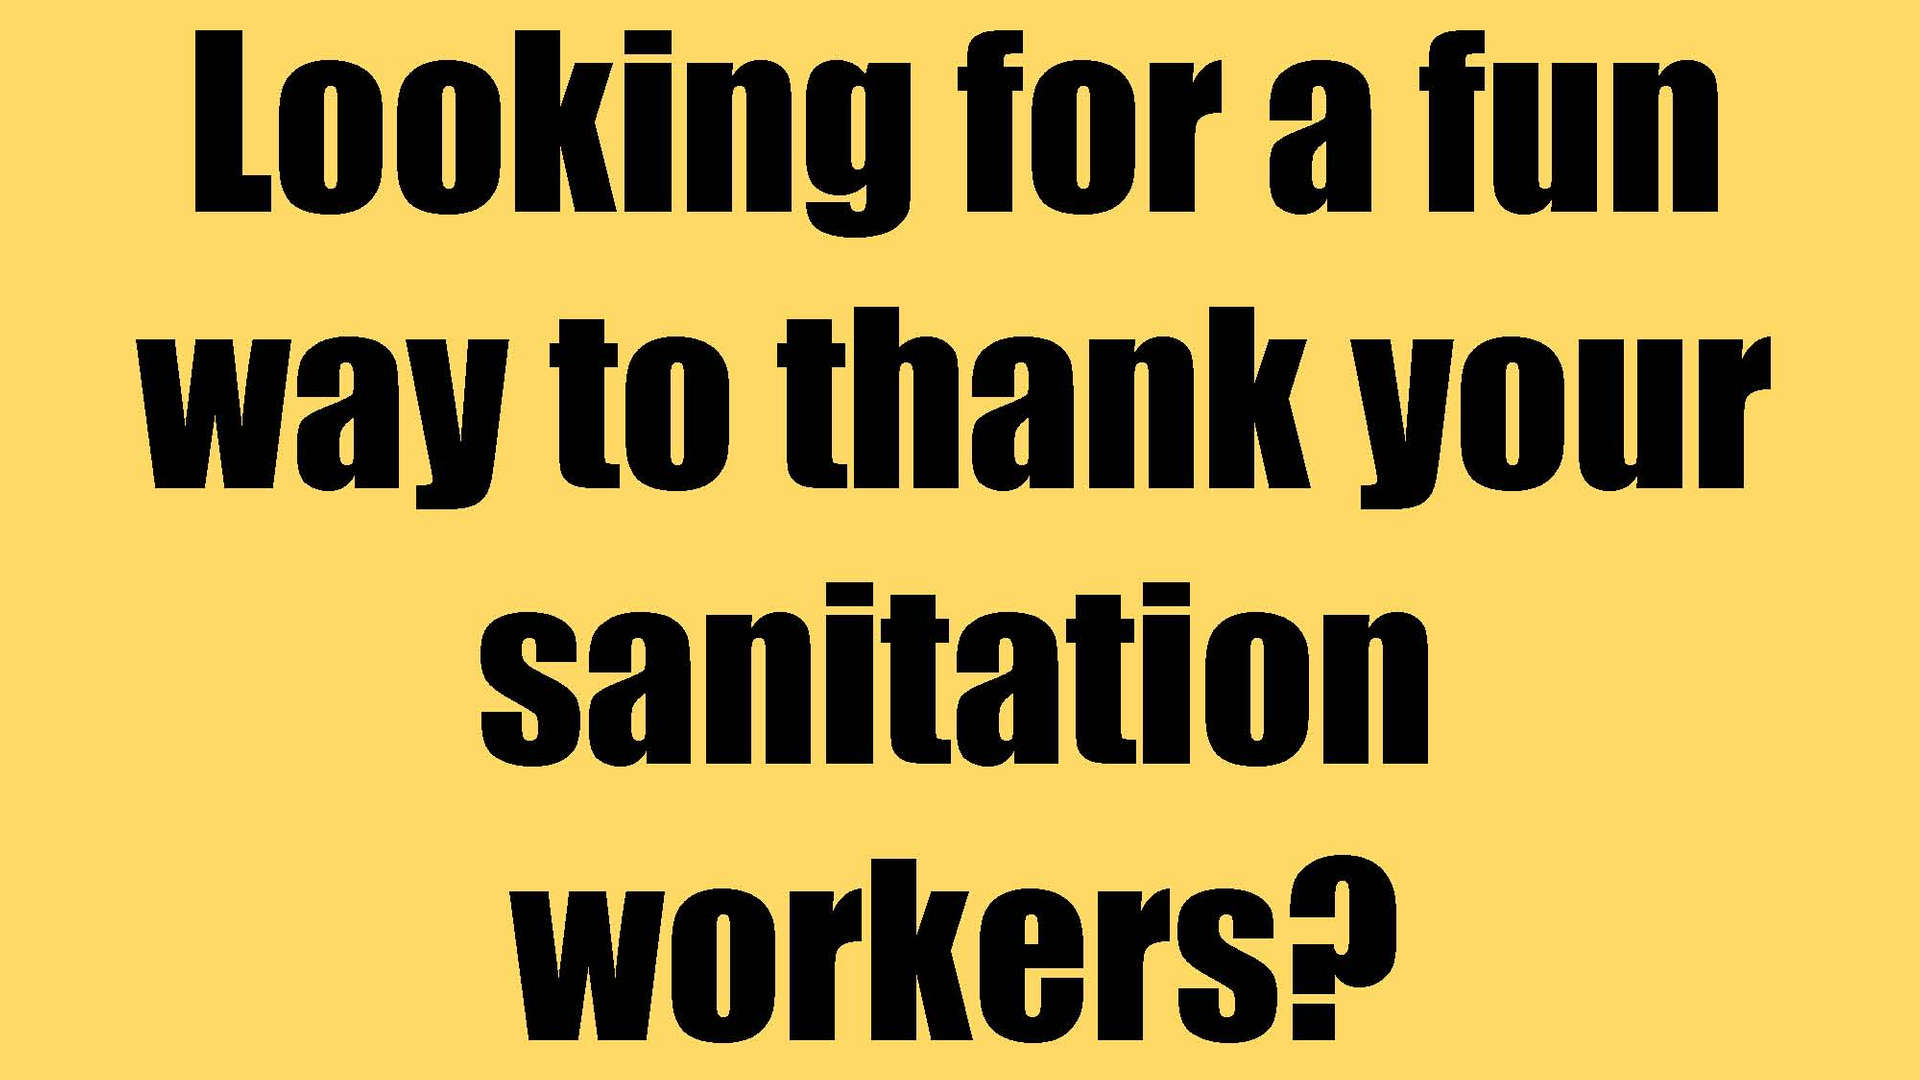 Thank Sanitation Workers